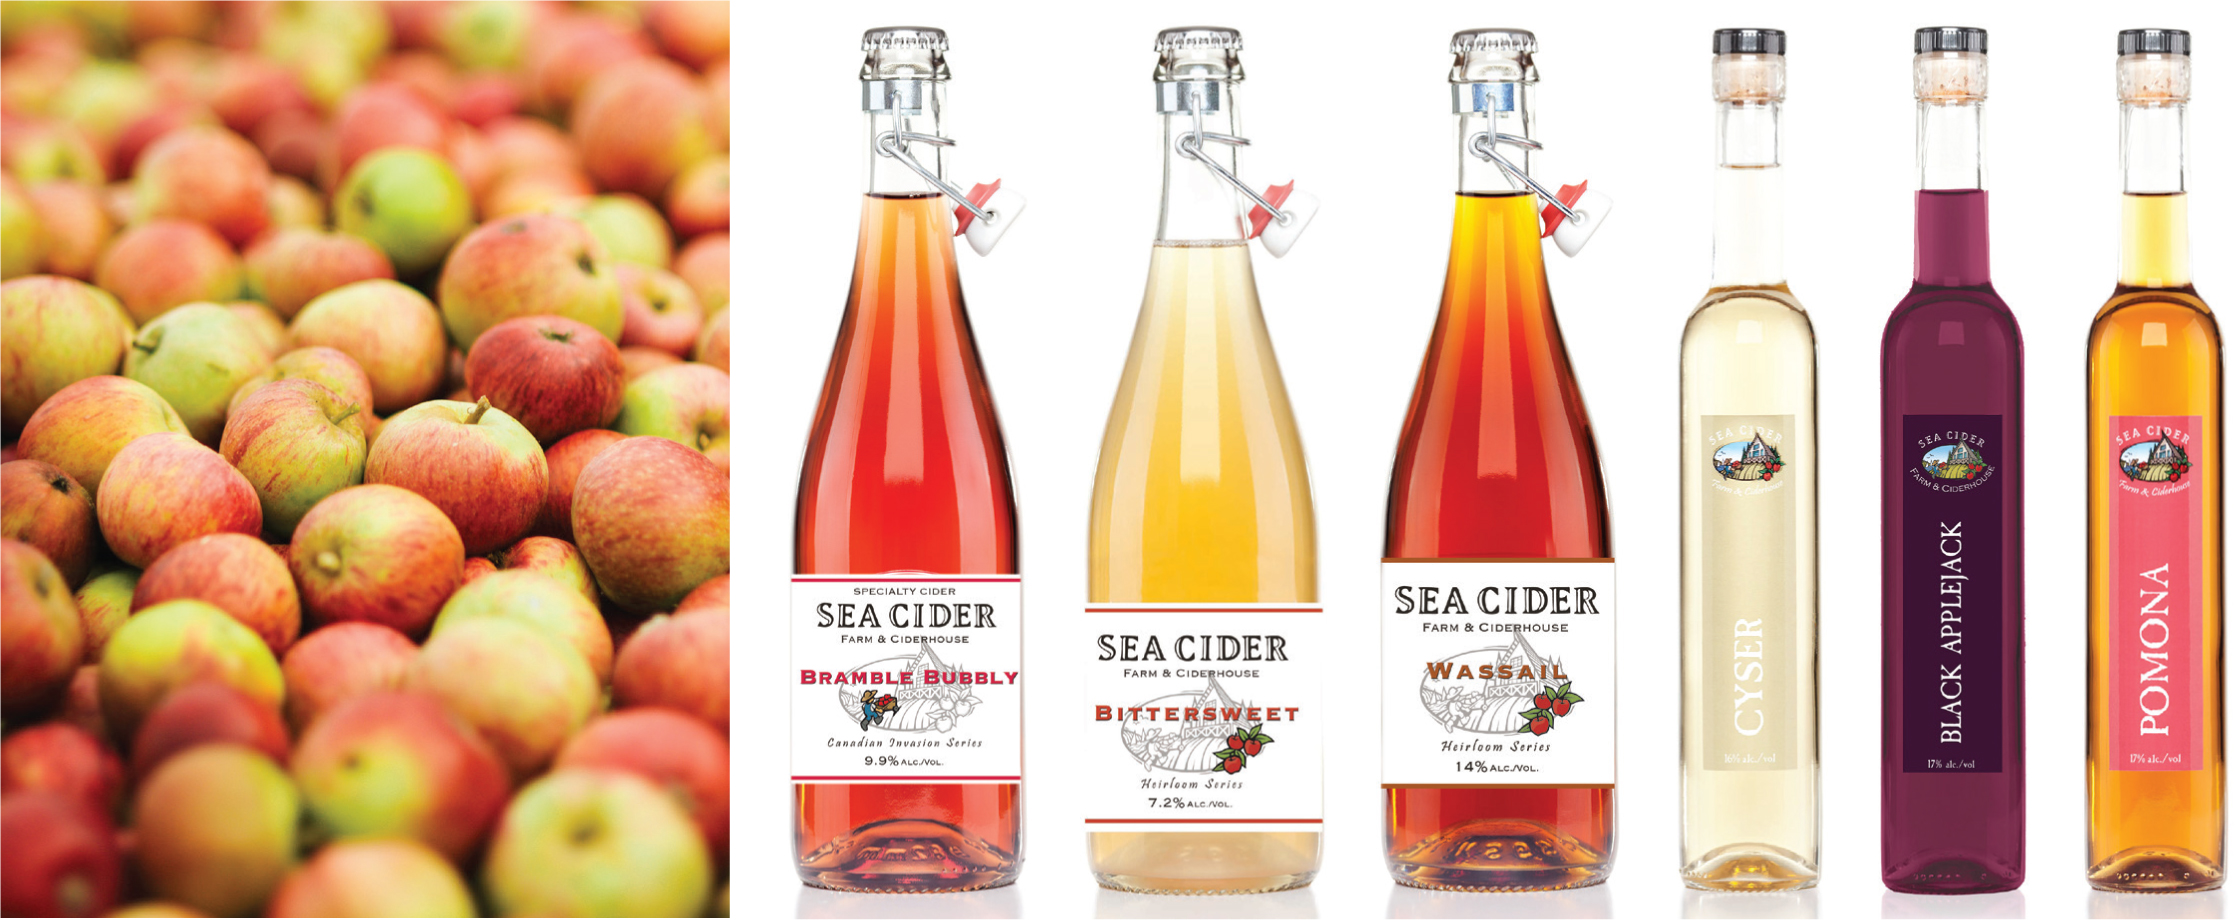 Image de Sea Cider Farm & Ciderhouse